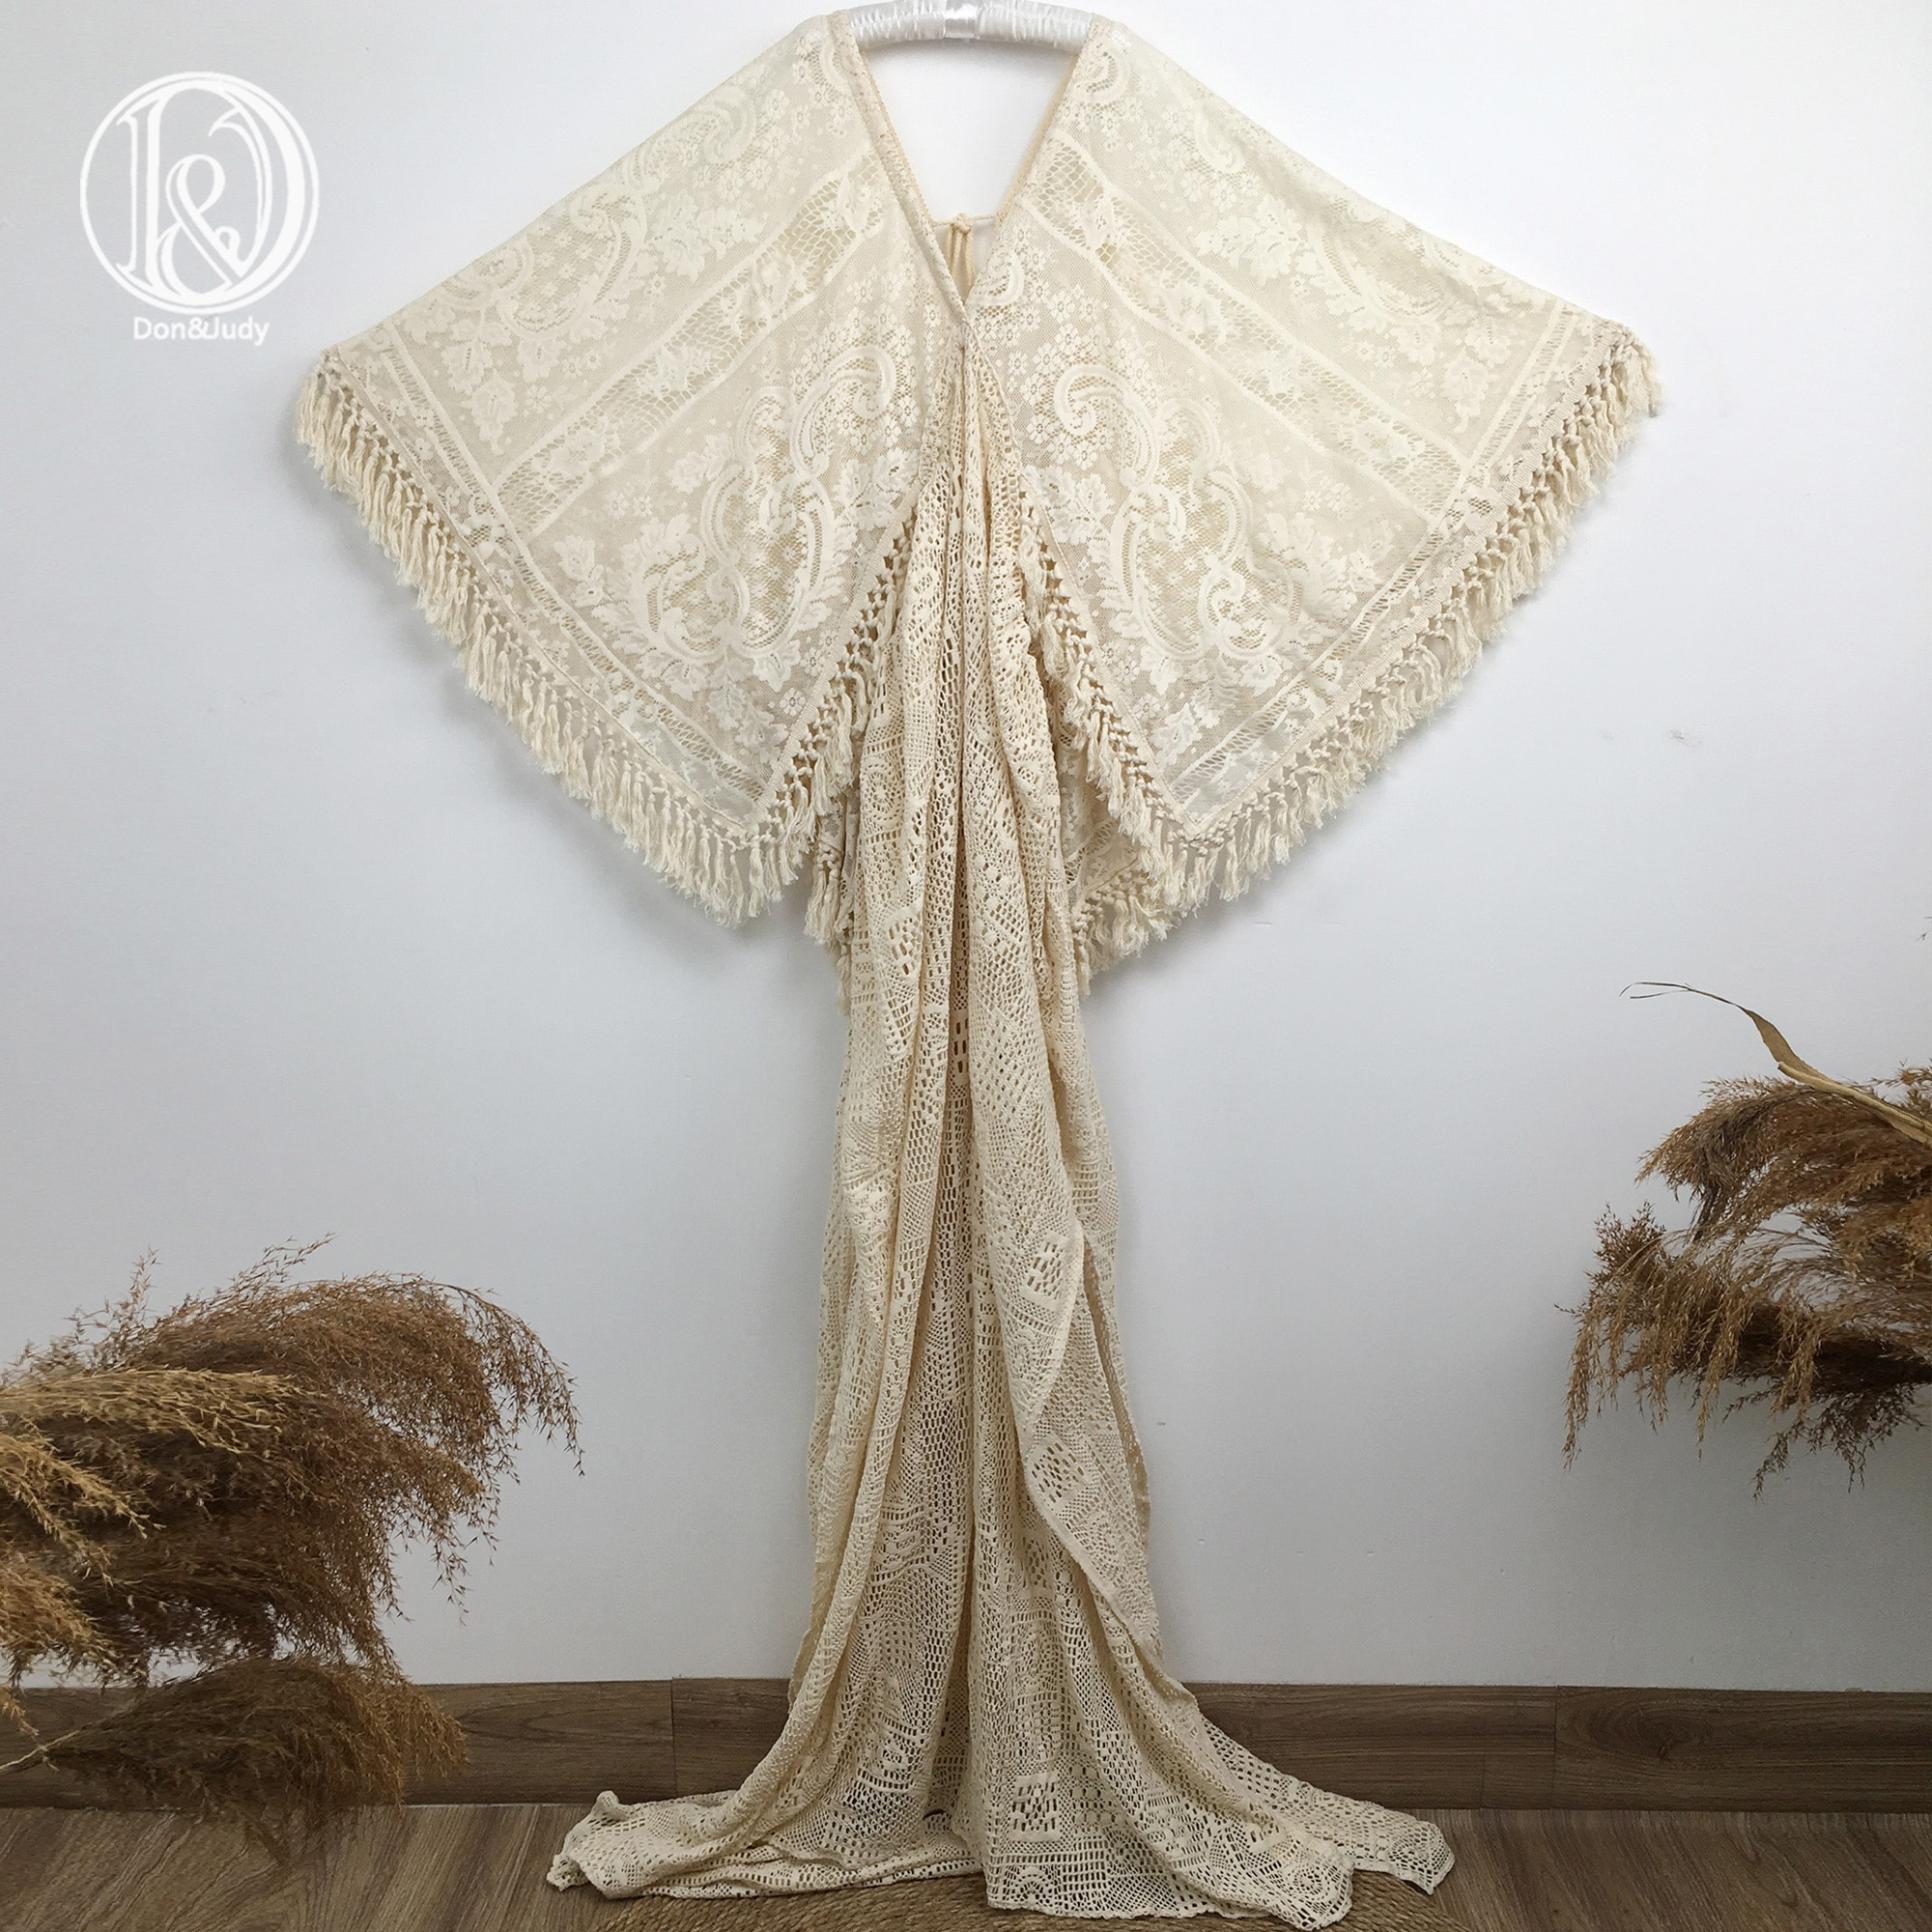 Don&Judy Maternity Dress For Photo Shoot Pregnancy Boho Lace Dress For Photography Baby Shower Maternity Photography 2021